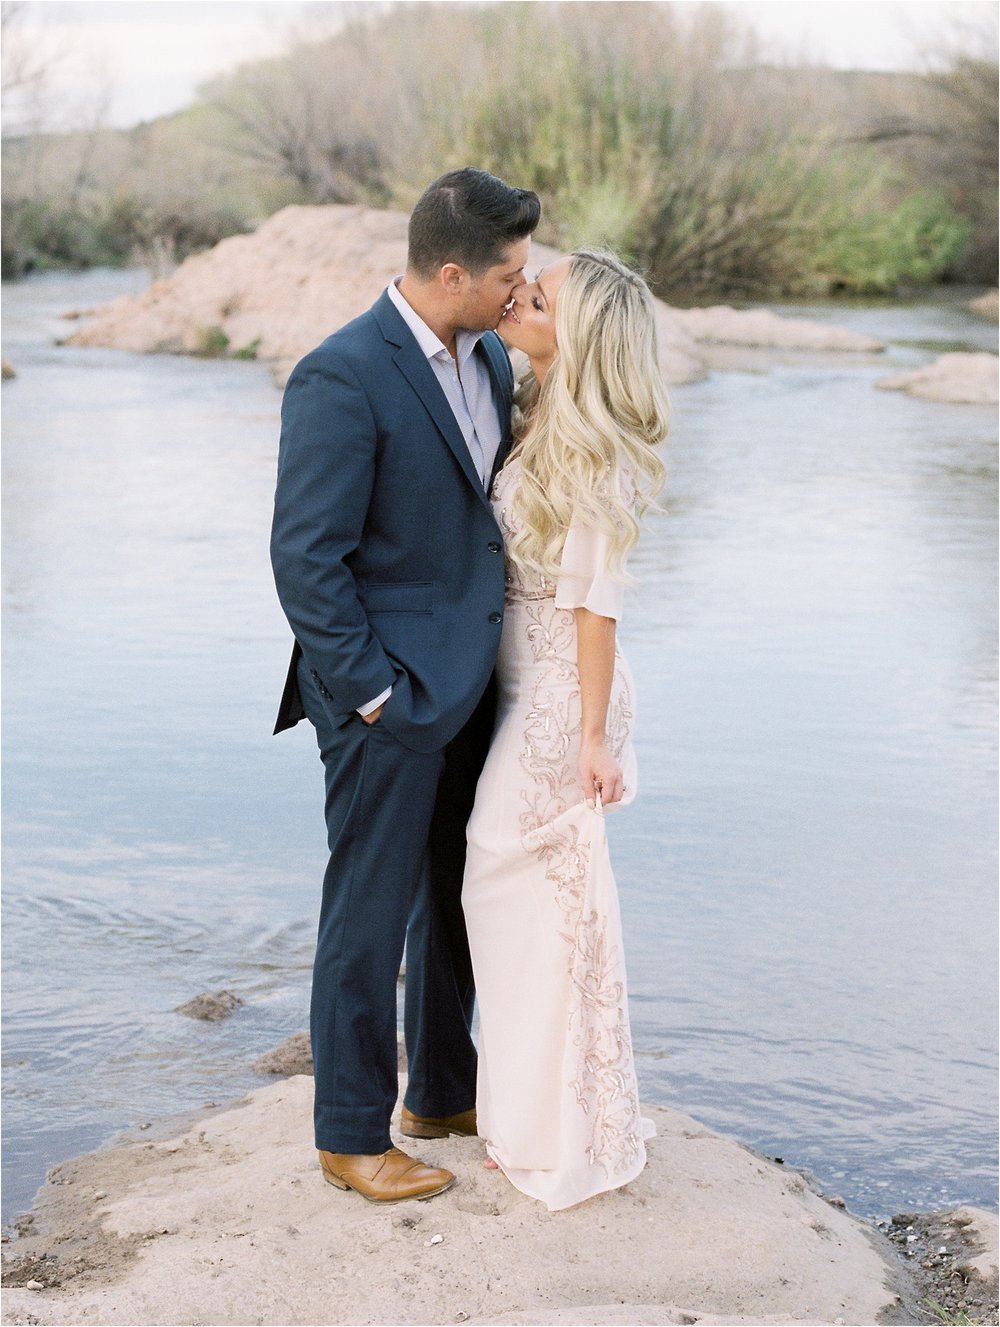 Sarah Jane Photography Film Hybrid Scottsdale Phoenix Arizona Destination Wedding Photographer salt river asos engagement britney tj_0022.jpg